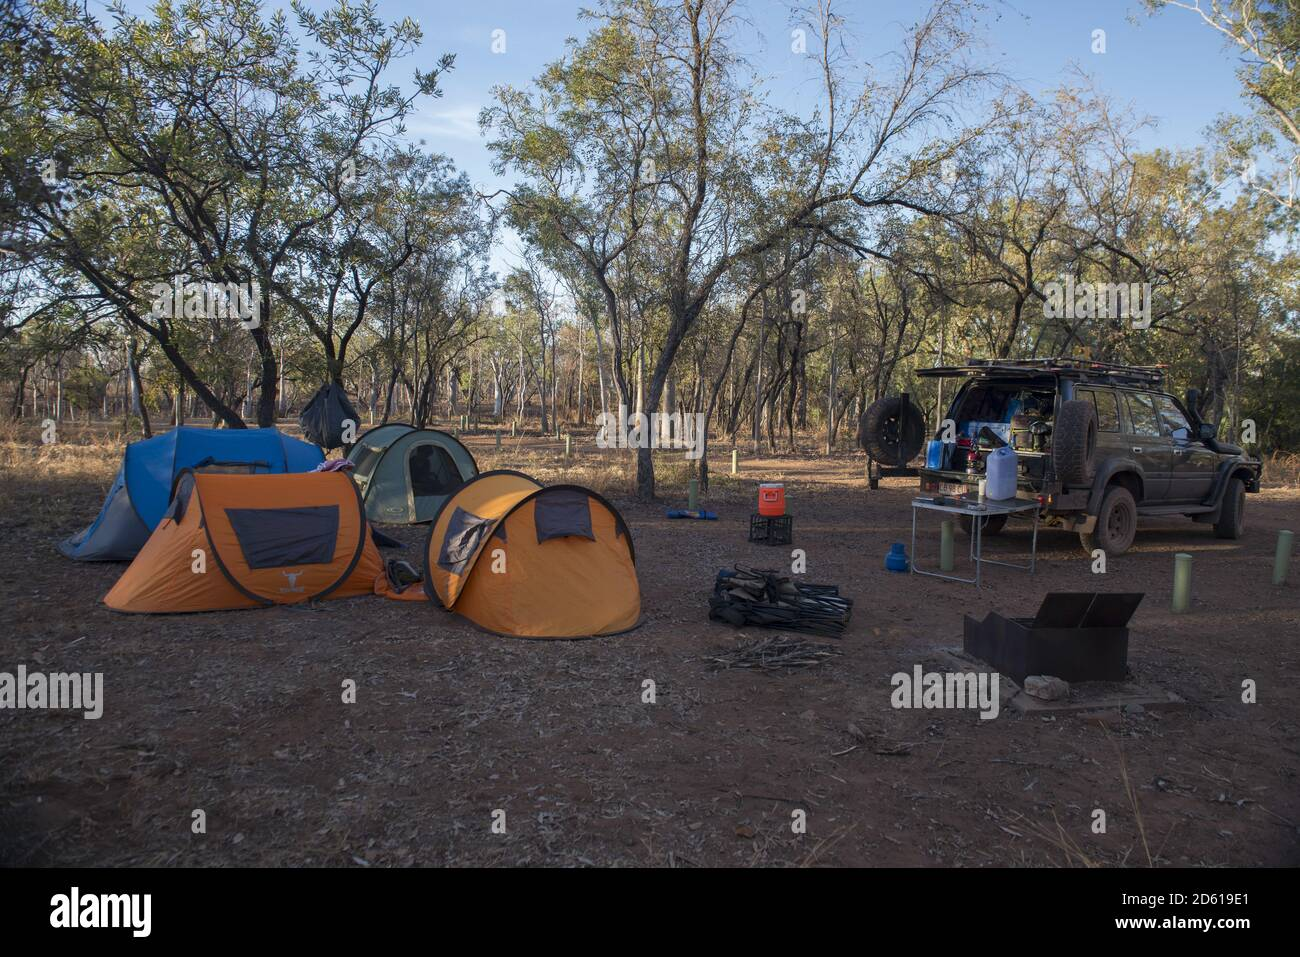 Darwin Australia Jul 16 2020 A Suv Or Four By Four Tented Campsite In The Remote Outback Of Australia Stock Photo Alamy